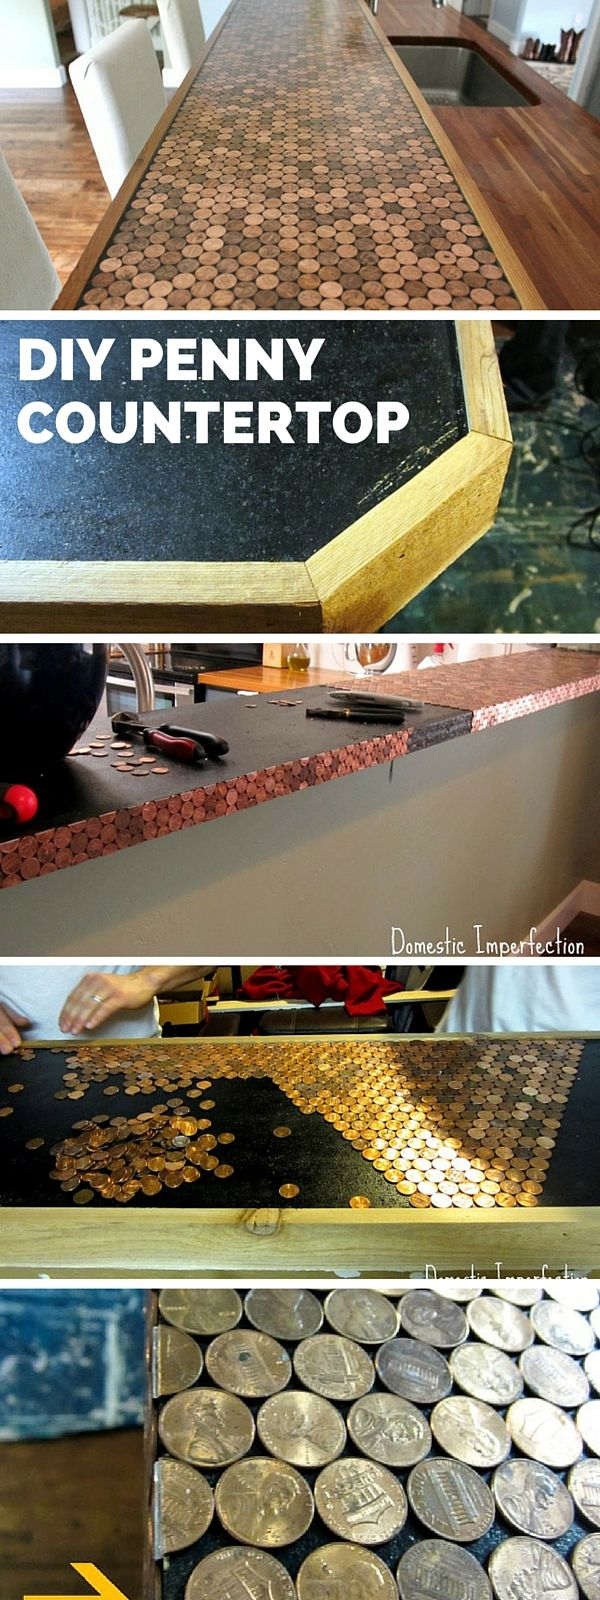 Check out the tutorial: DIY Penny Countertop #DIY #homedecor